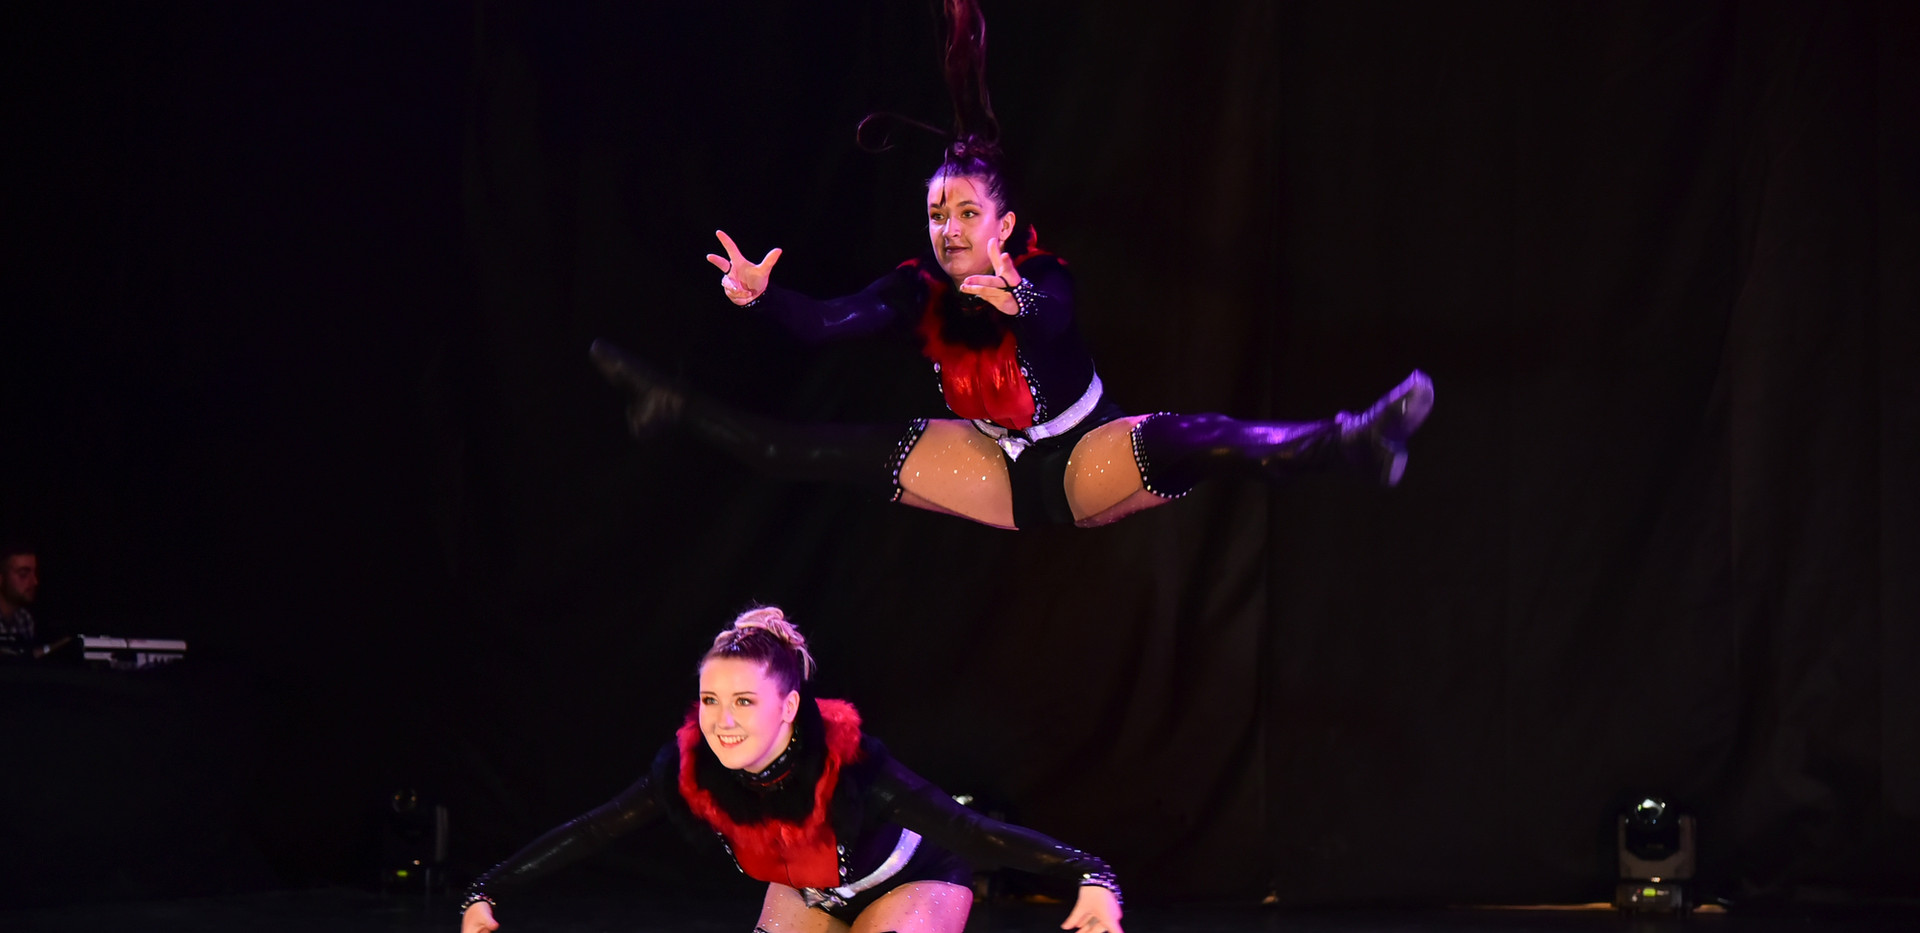 DANCE SHOW 19 - RS DUO Rose & Julie (2)_